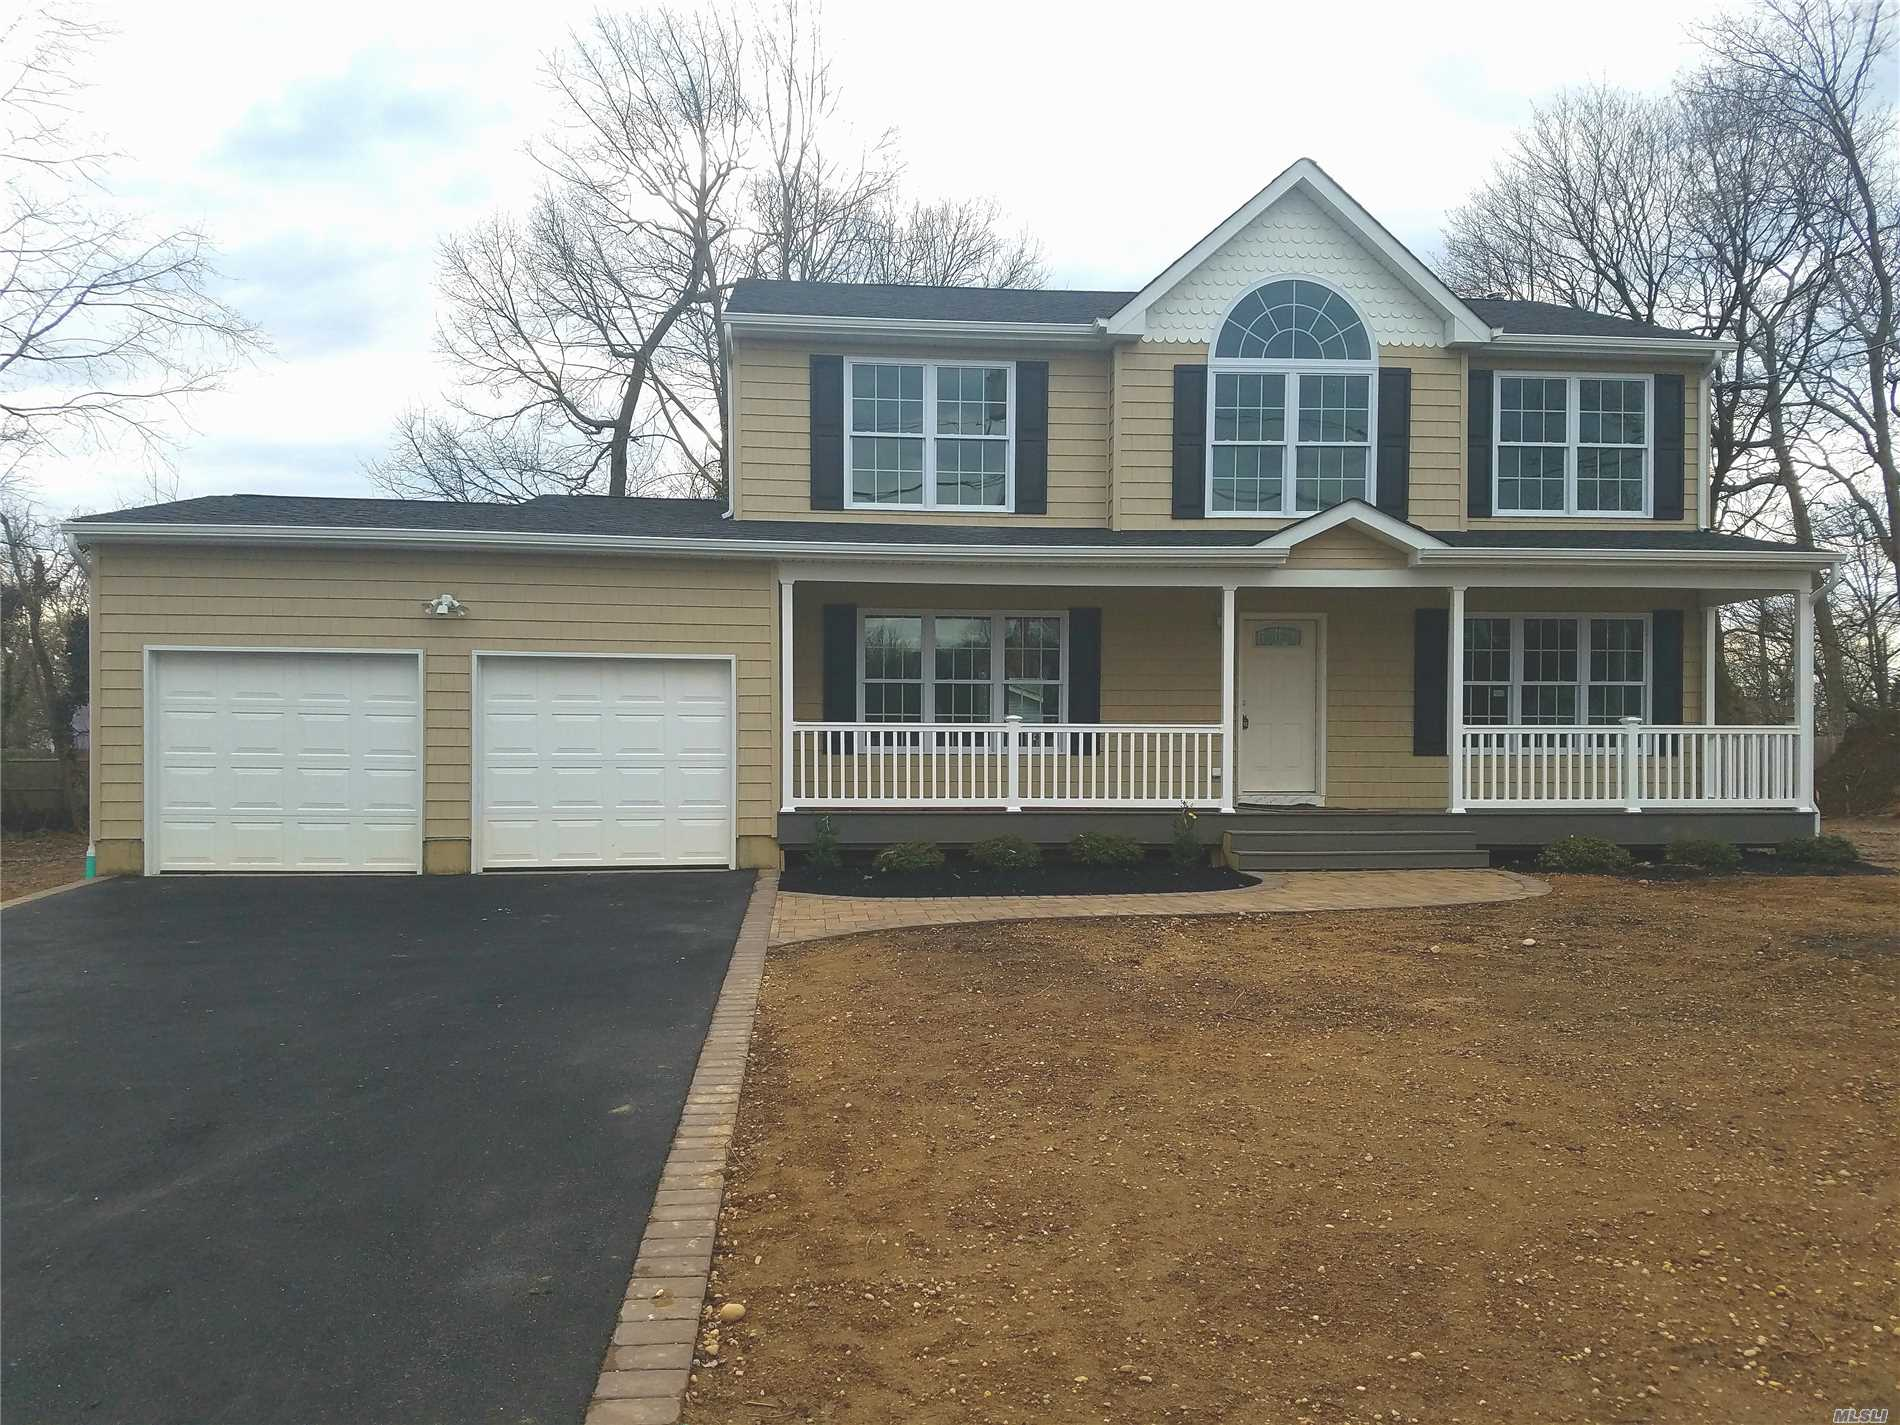 Photo of home for sale at N/C Jacqueline Ln, Centereach NY